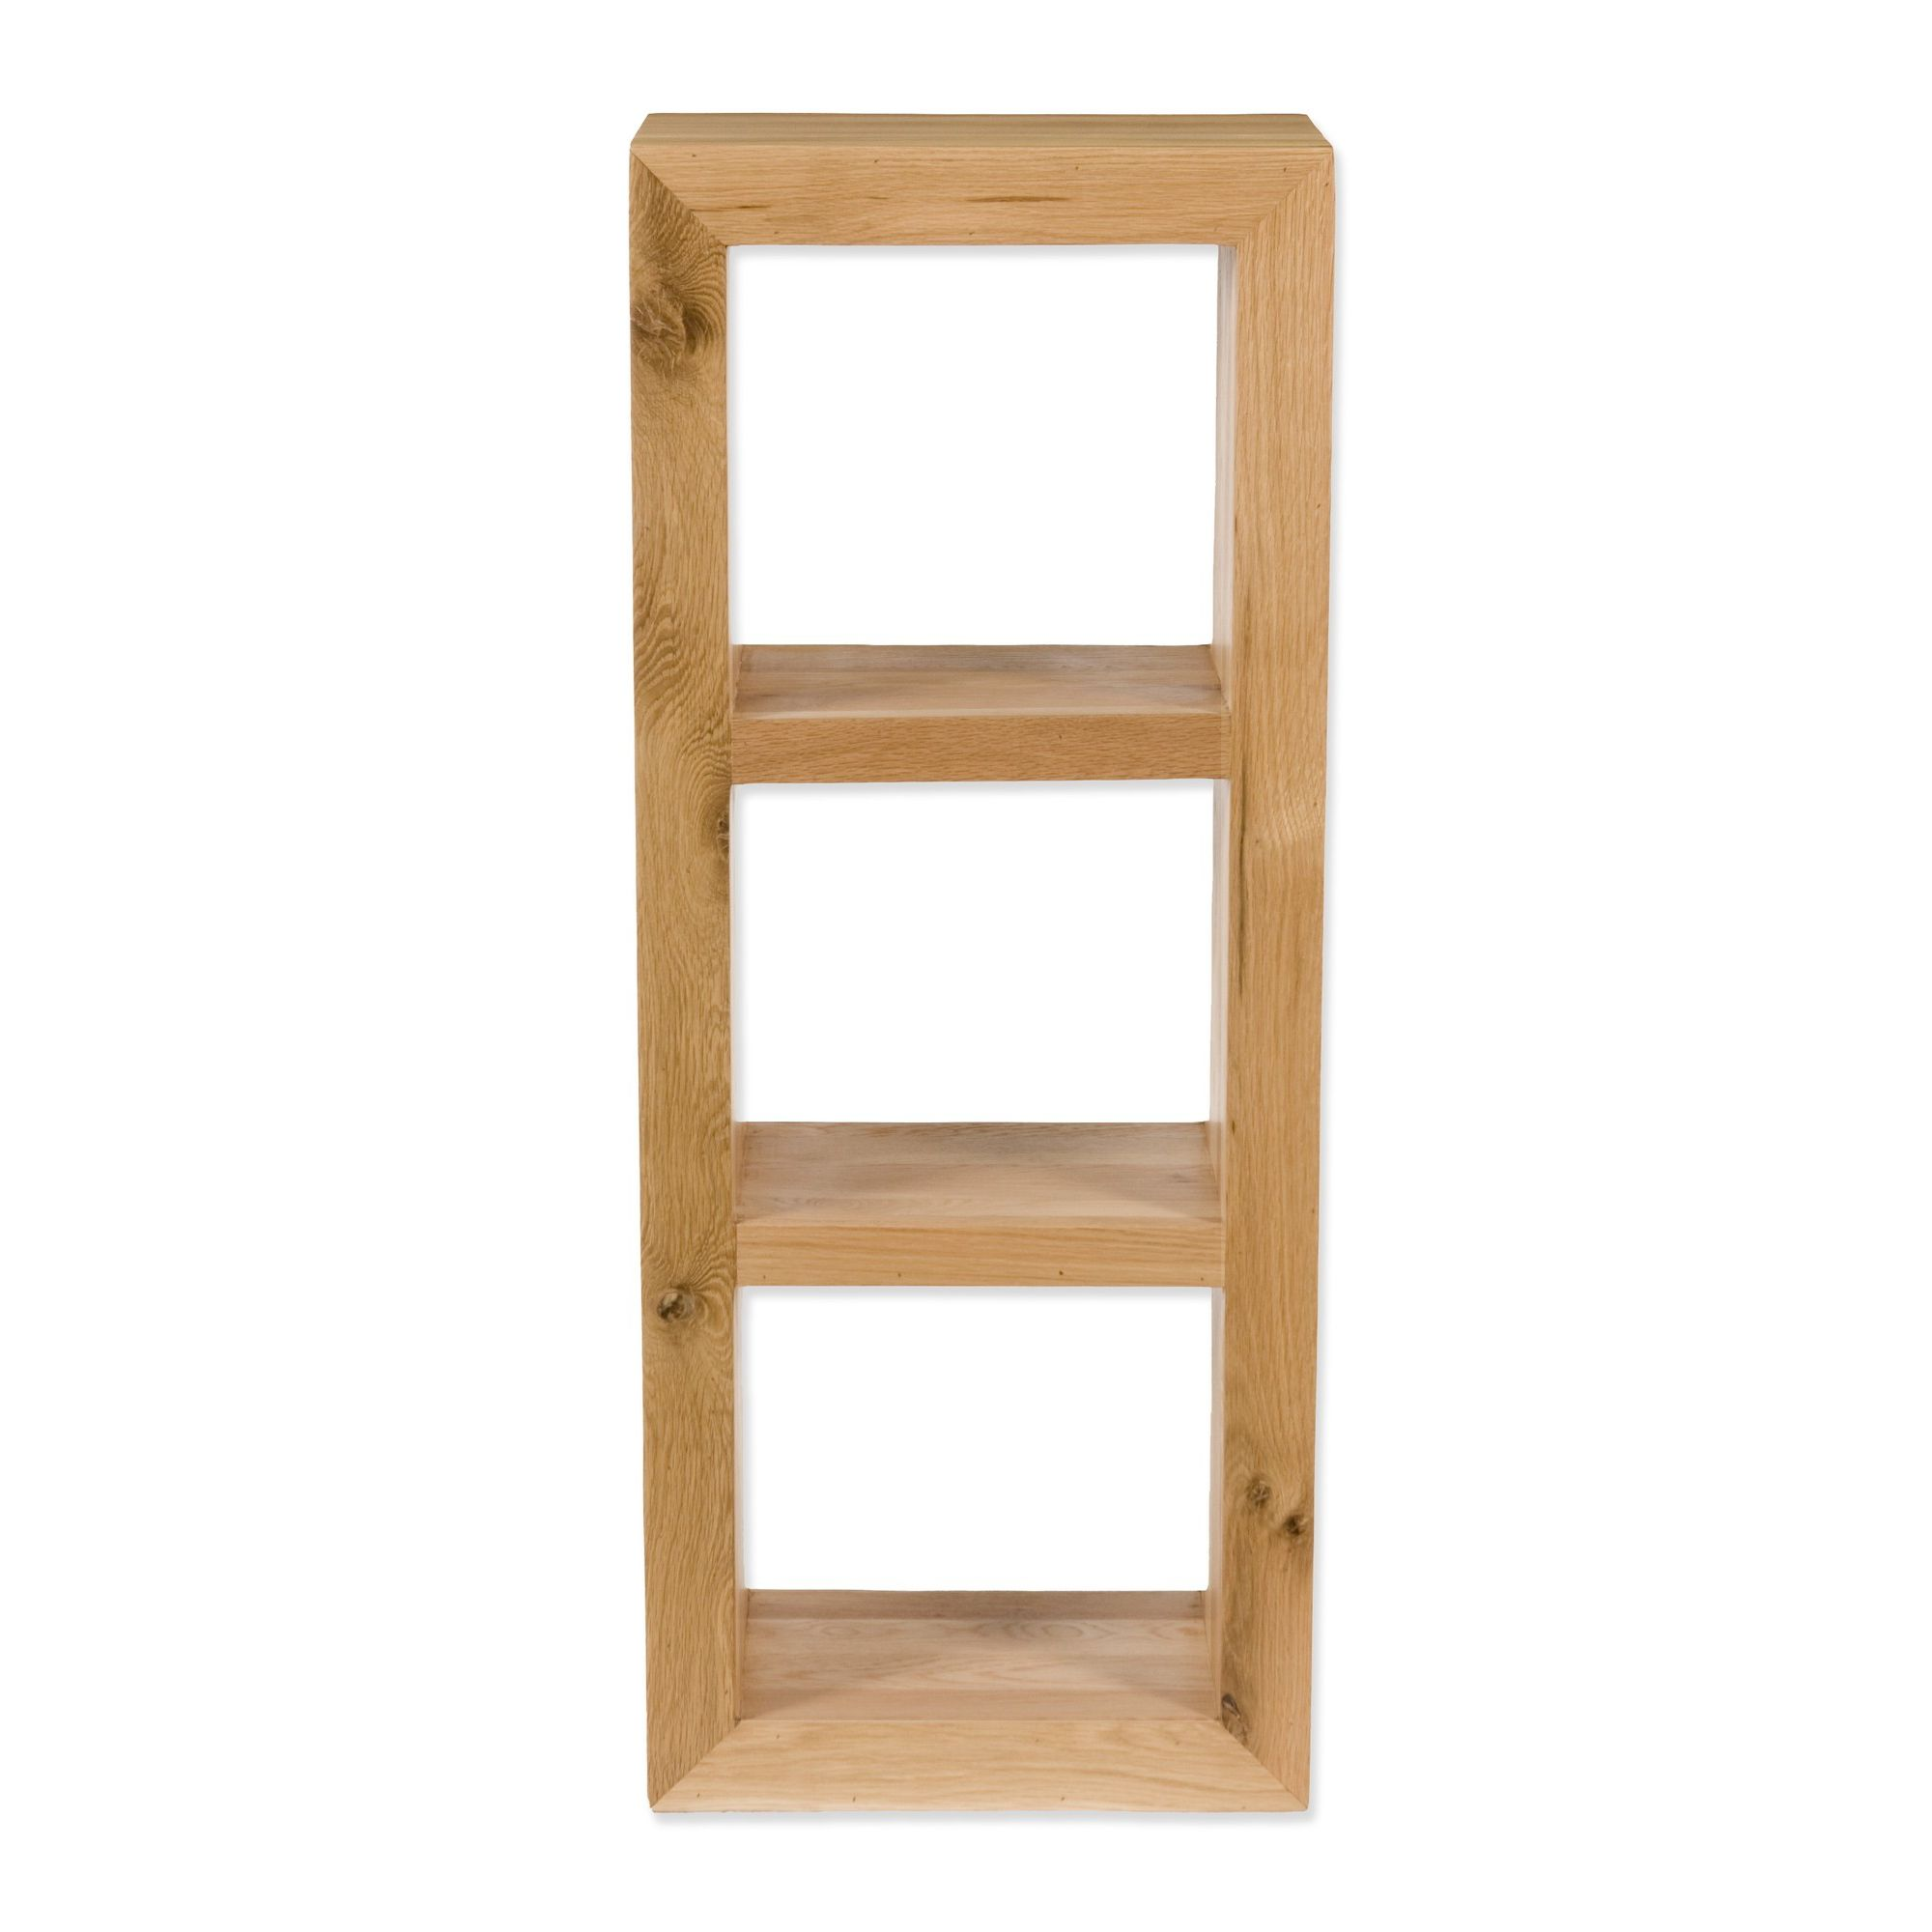 Elements Ashgrove Three Hole Vertical Shelving Unit in Natural Lacquer at Tesco Direct